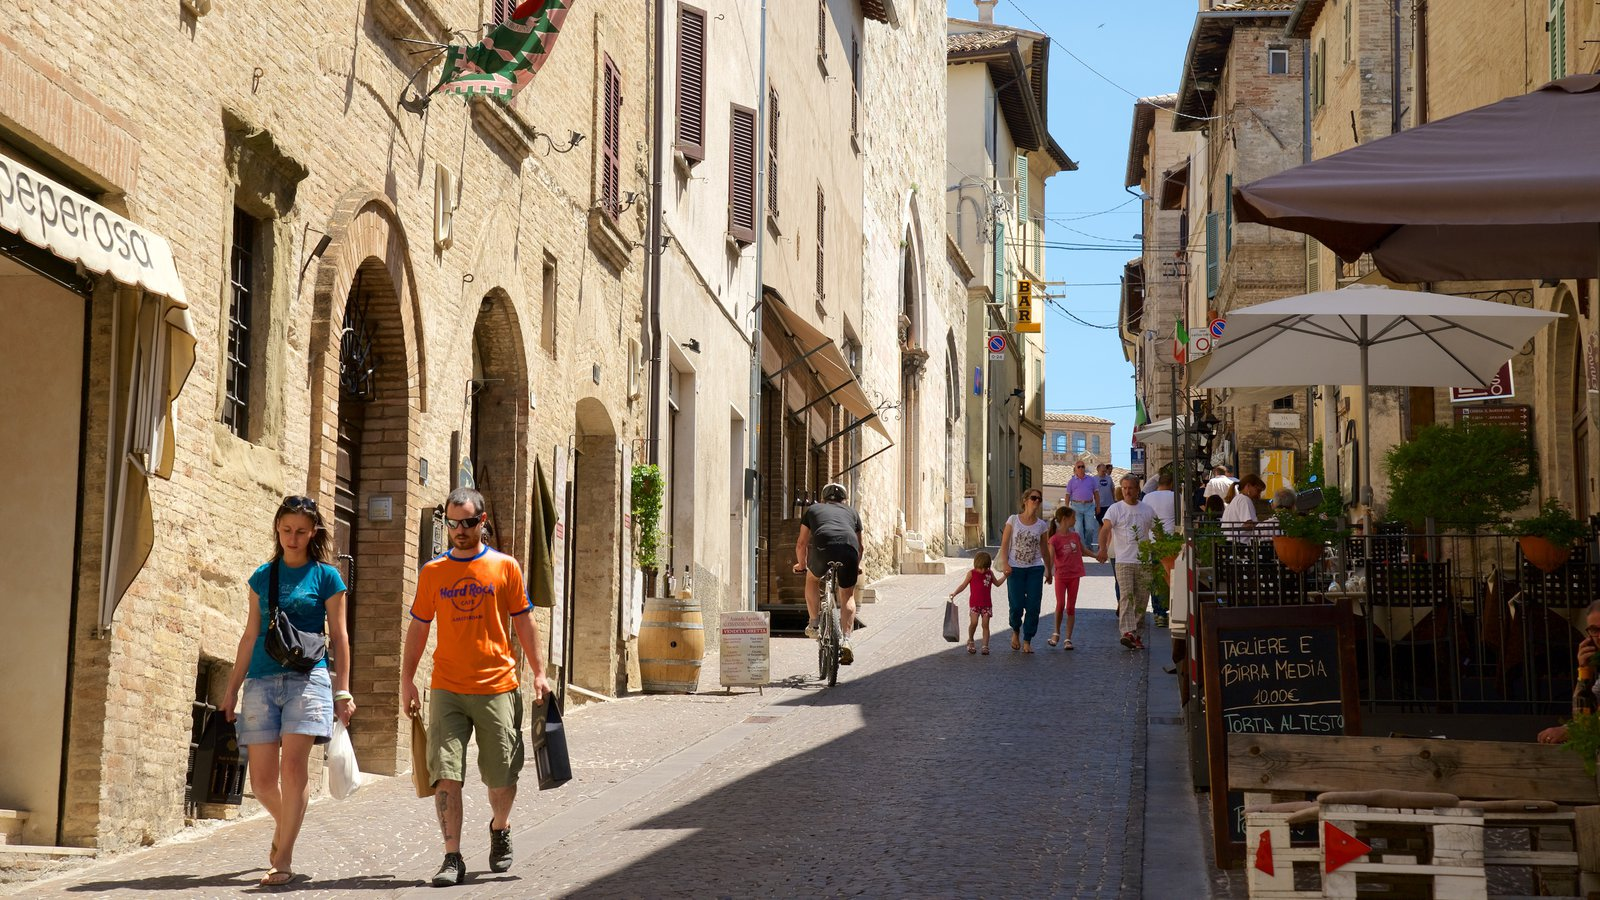 Montefalco showing cafe scenes, a small town or village and street scenes